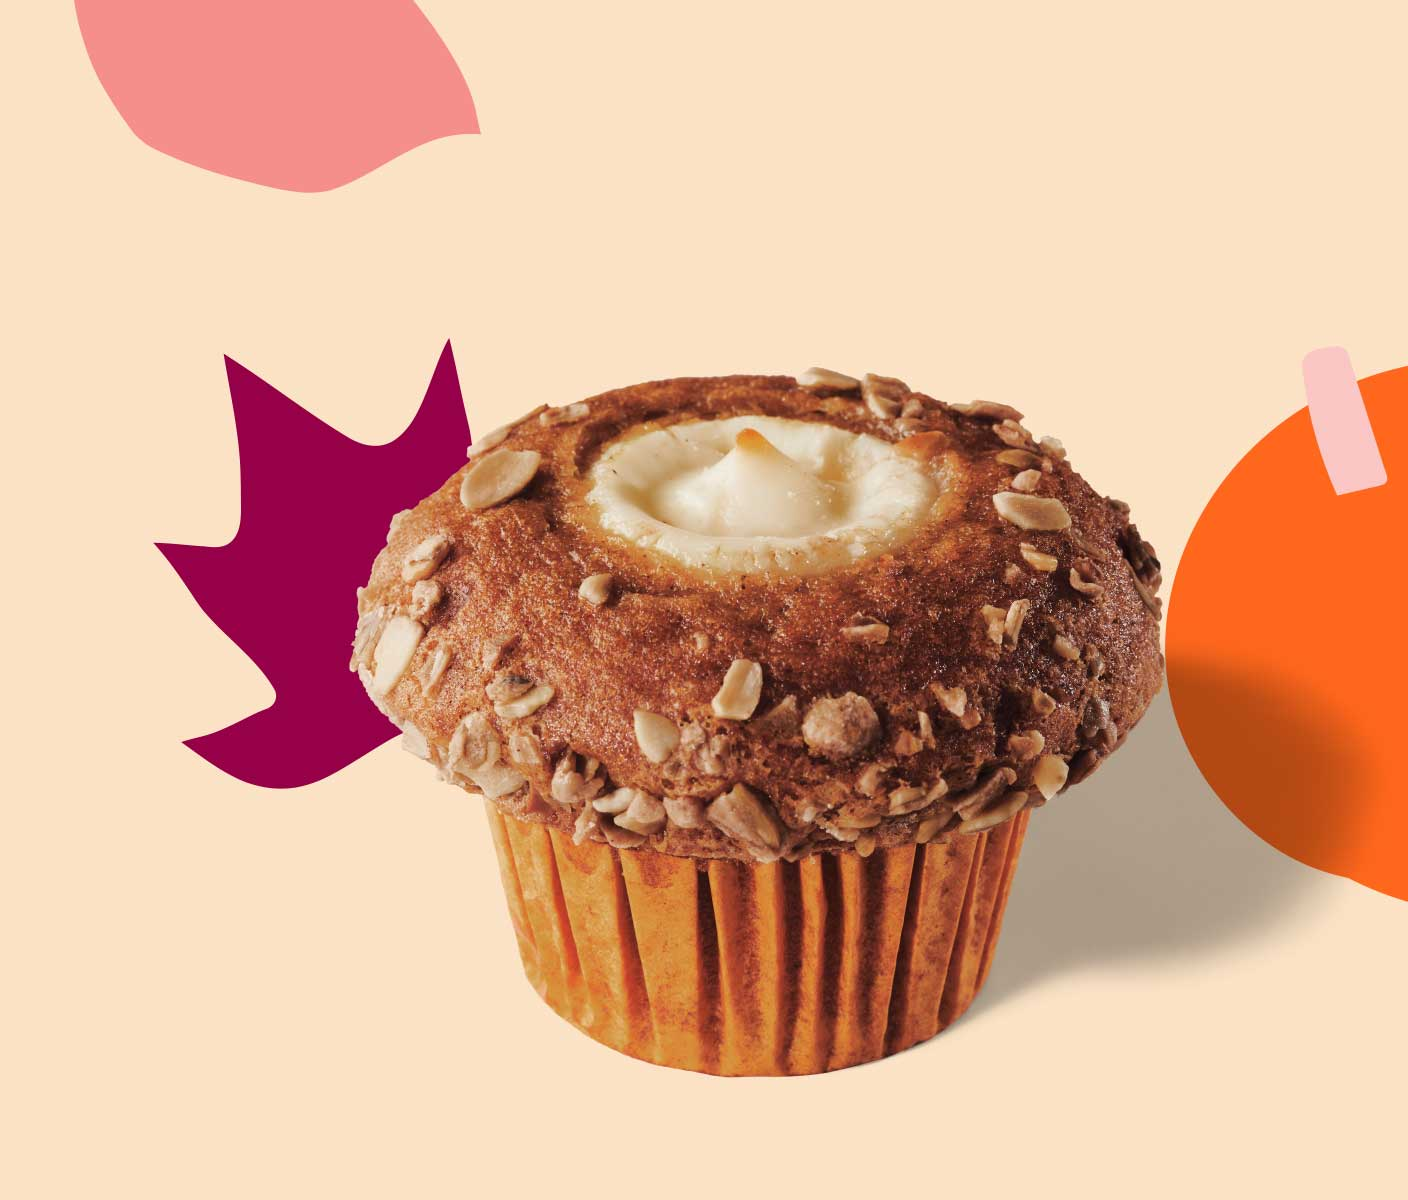 Muffin with cream cheese center.